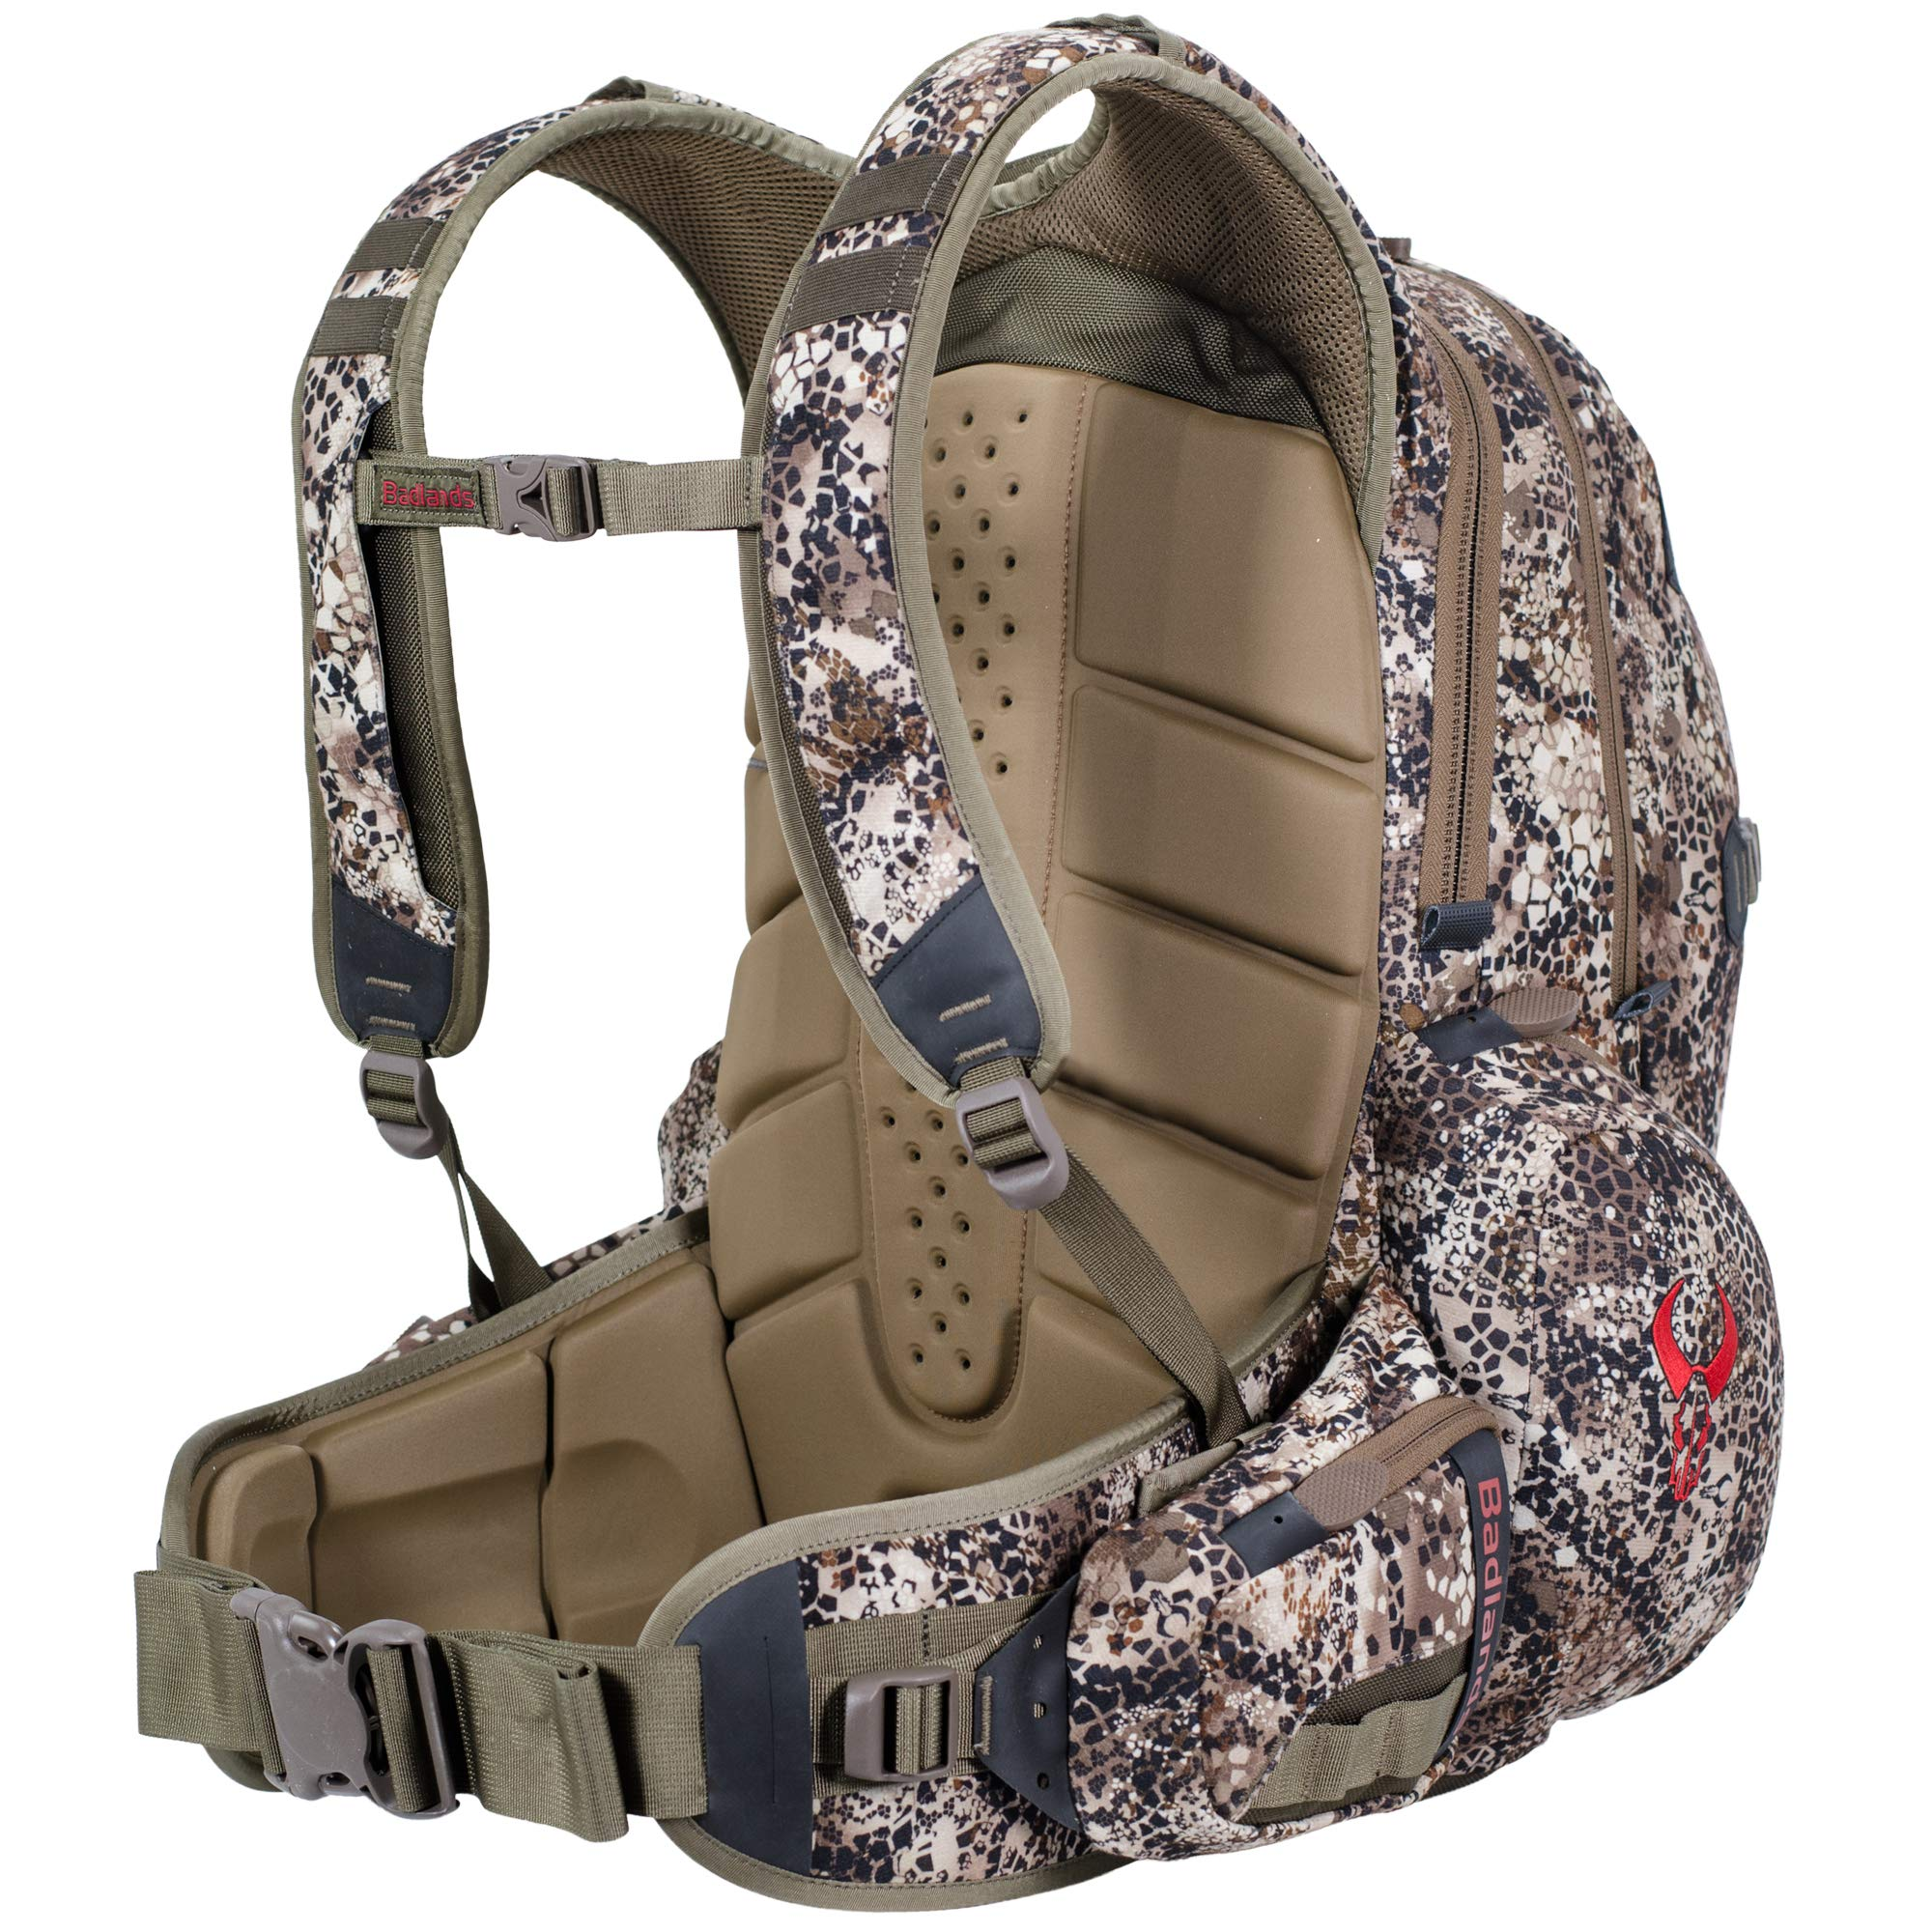 Badlands Superday Camouflage Hunting Backpack - Bow, Rifle, and Pistol Compatible, Approach FX by Badlands (Image #3)